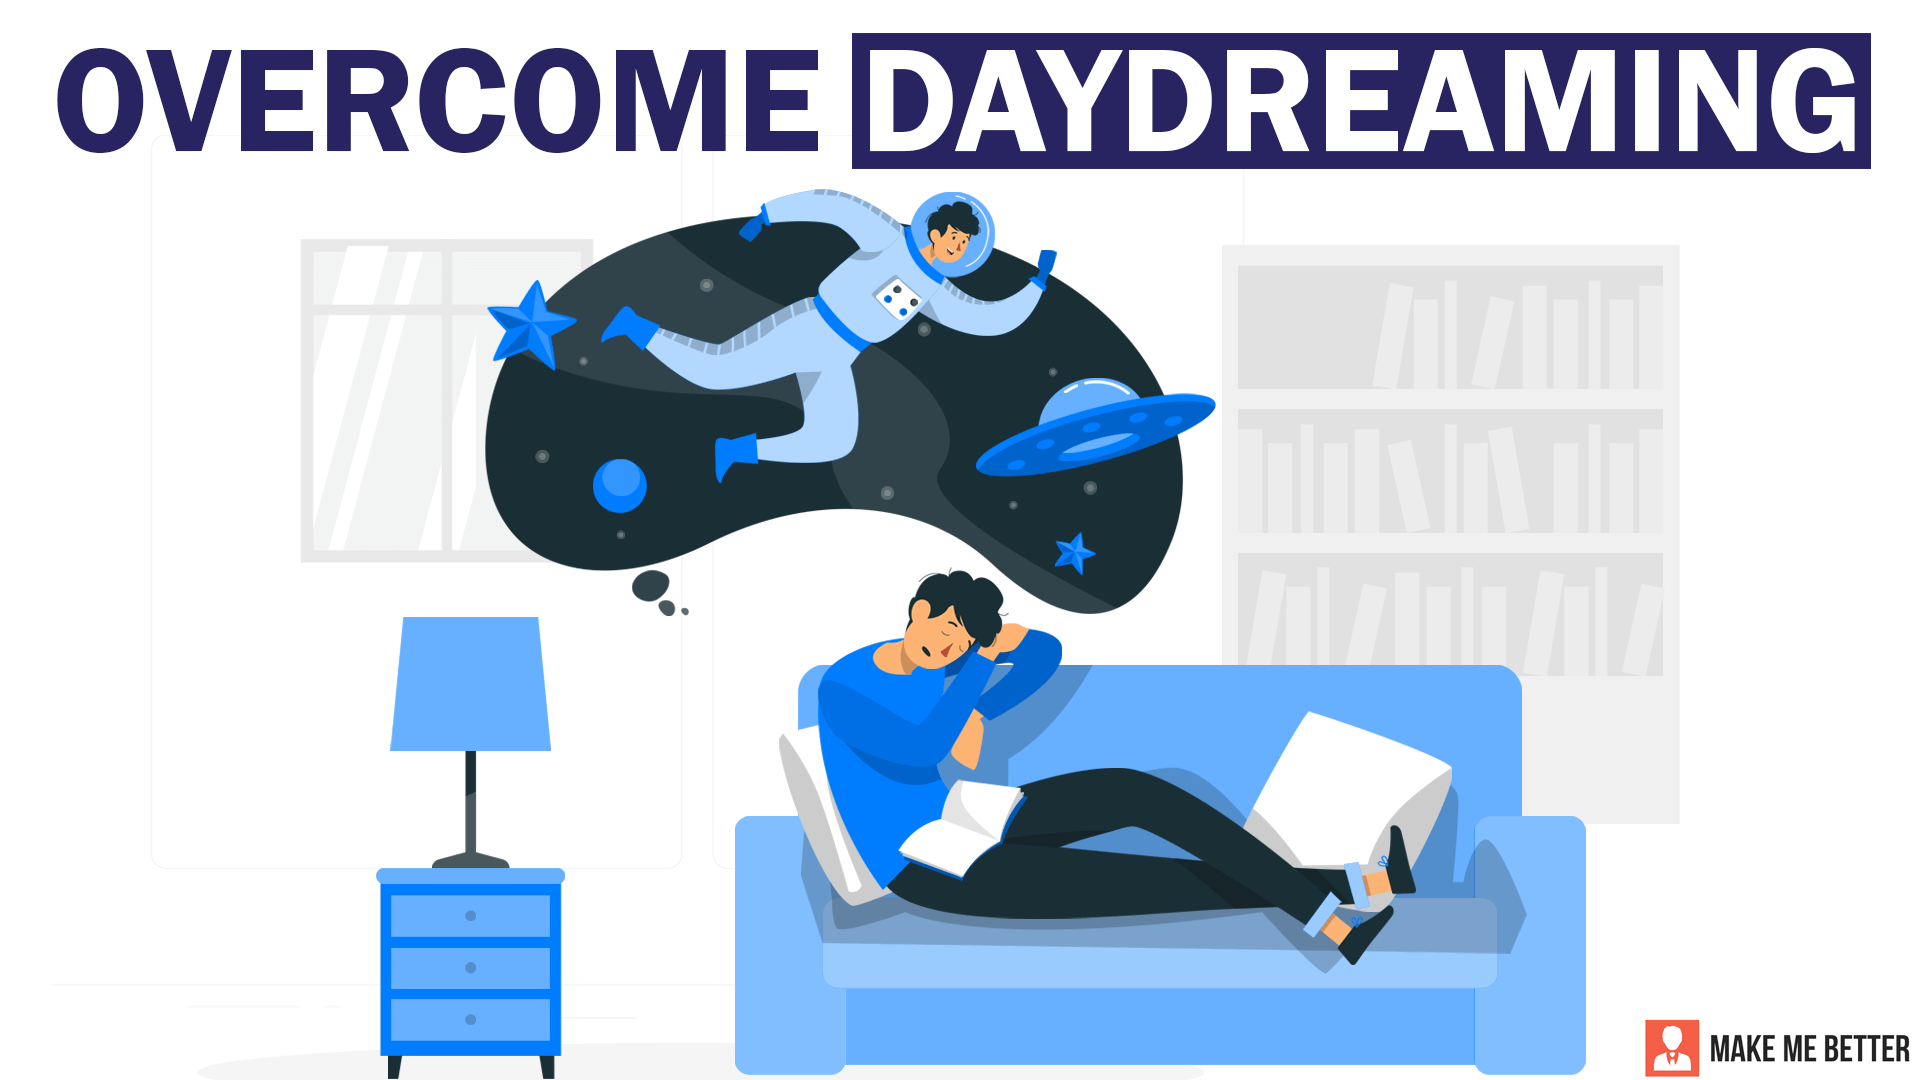 Overcome Daydreaming